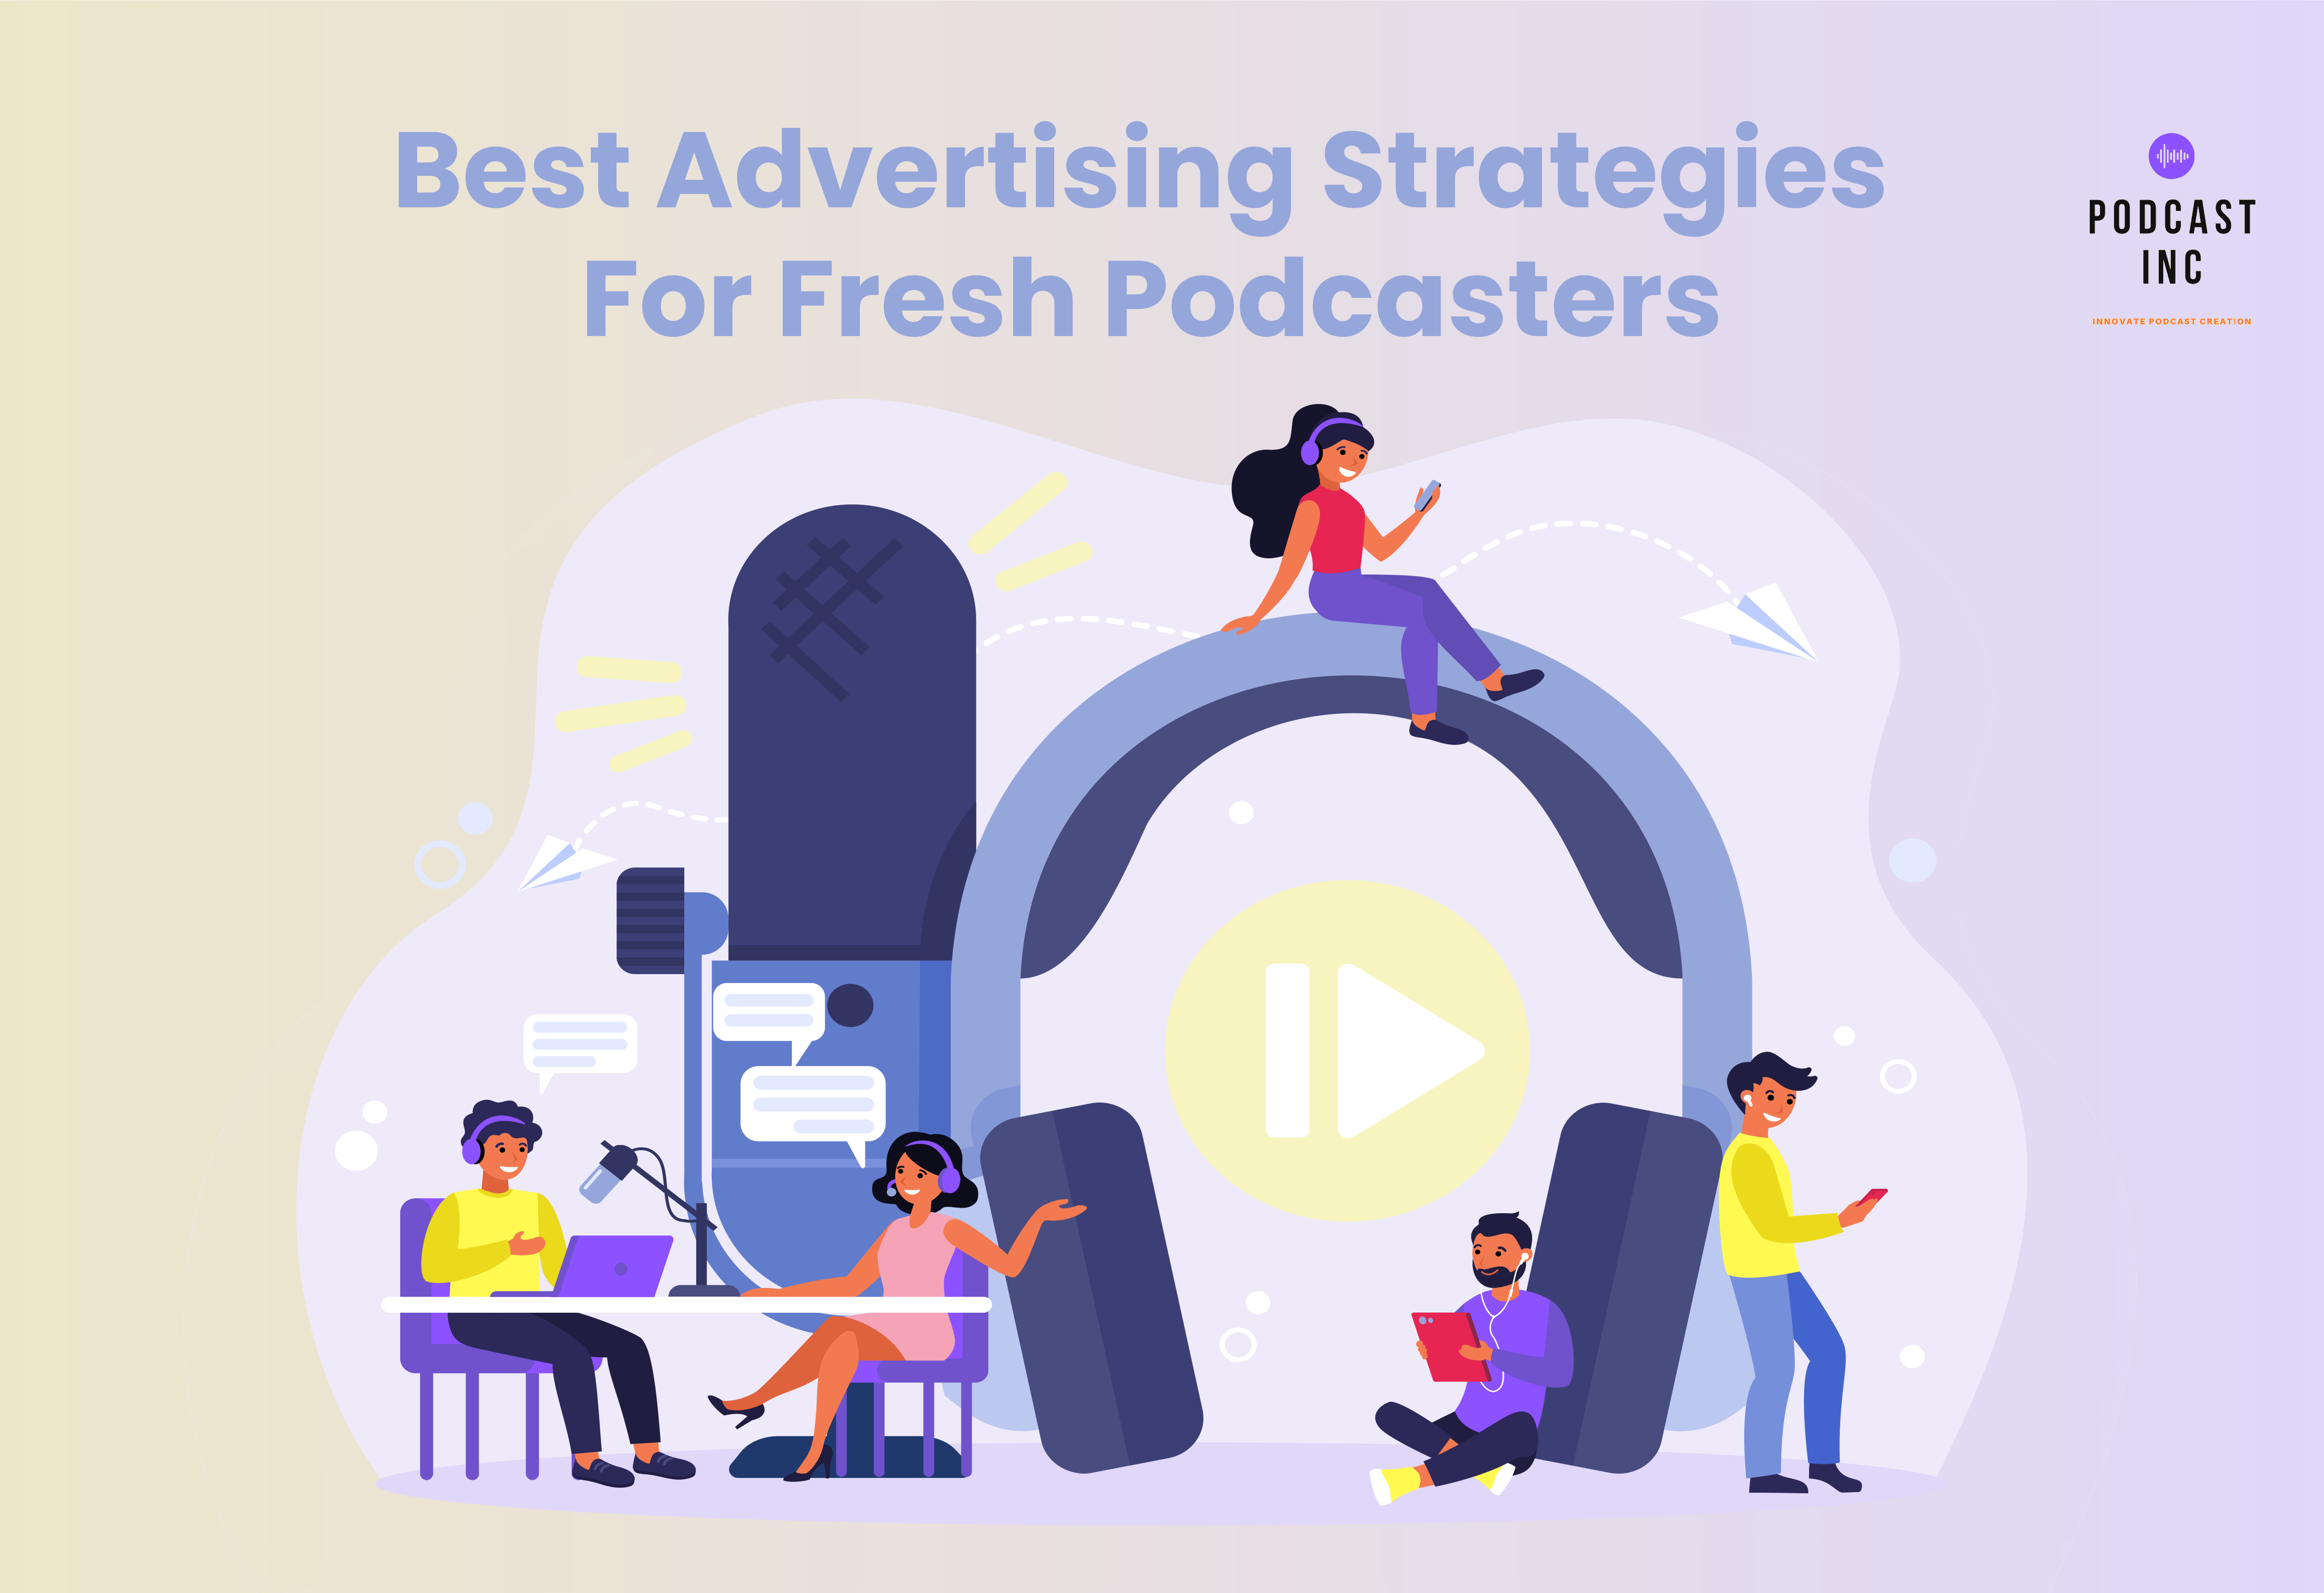 Best Advertising Strategies for Fresh Podcasters